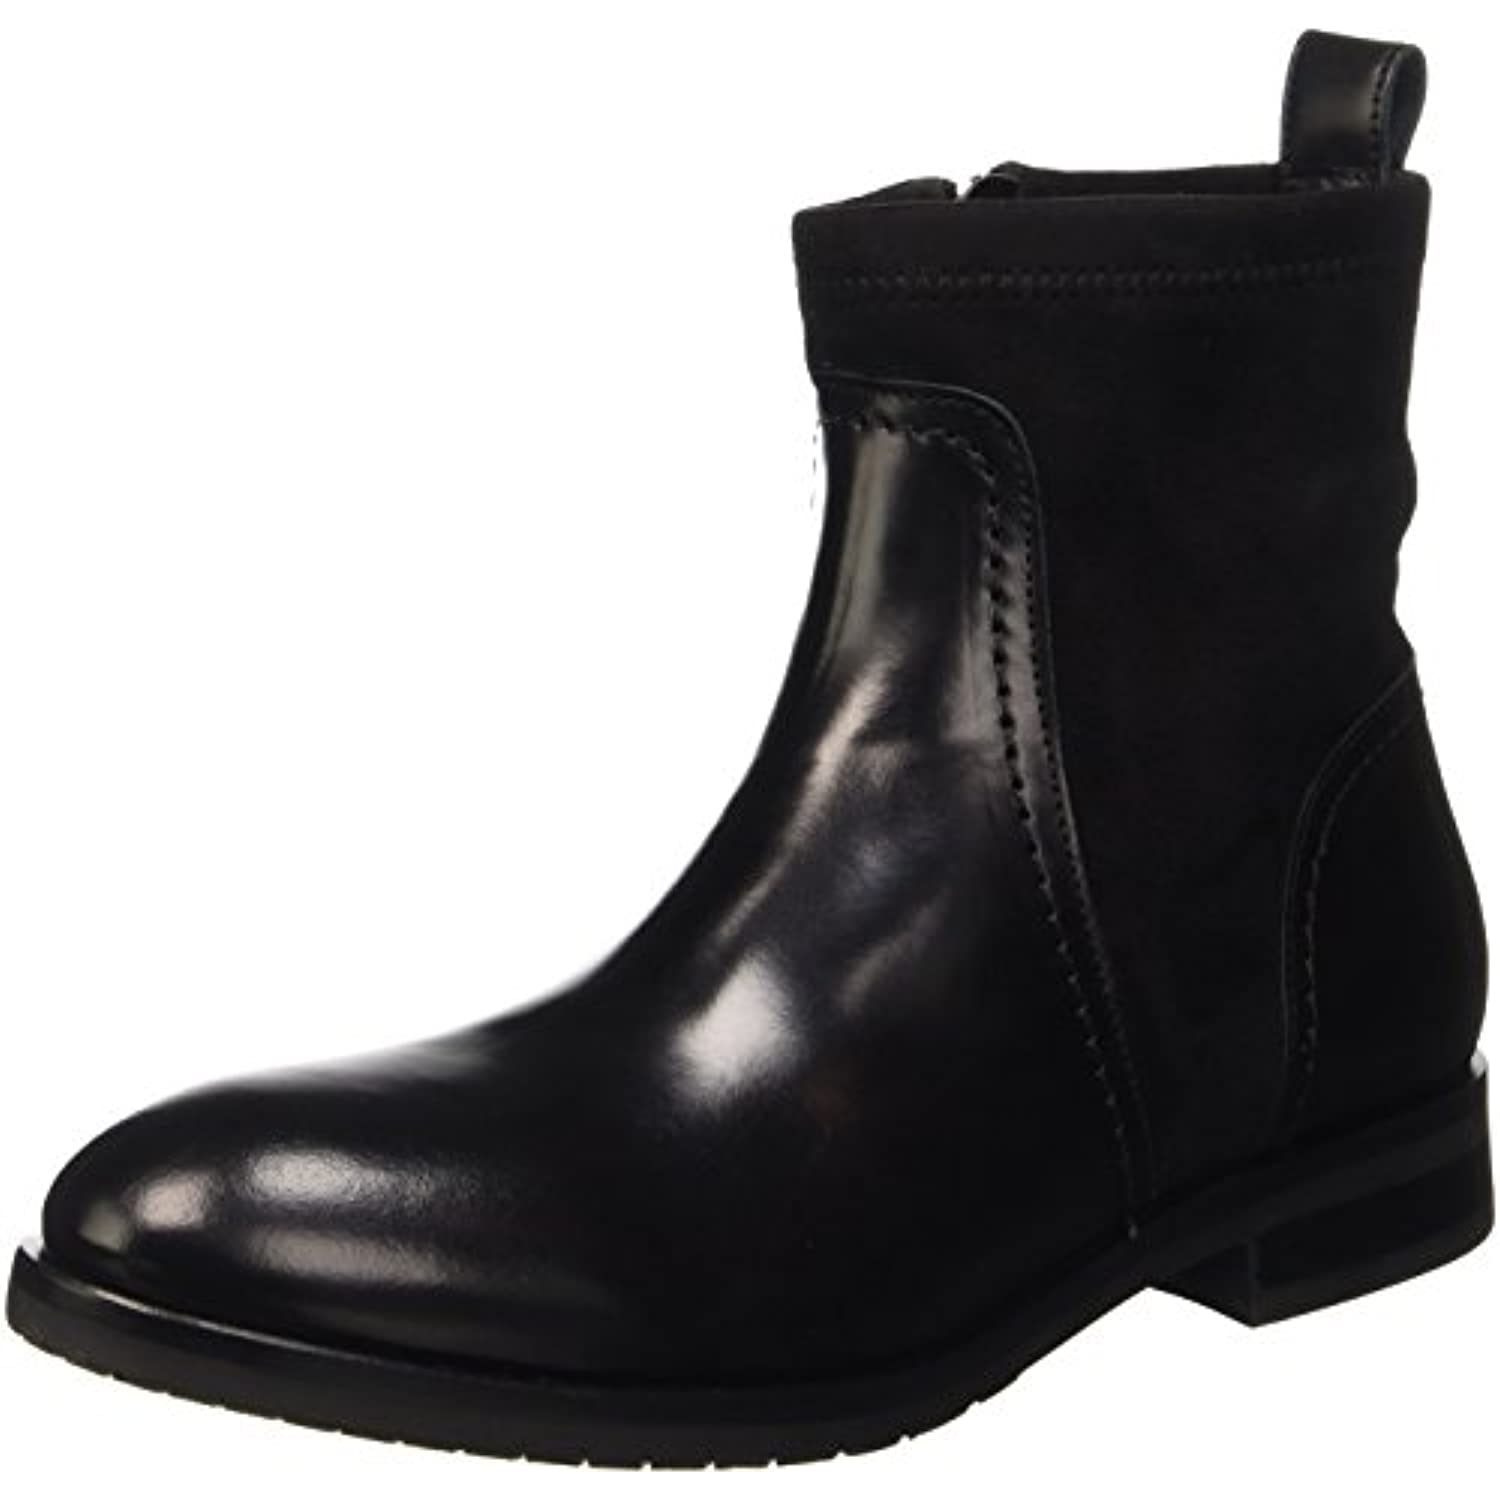 Tommy Classiques Hilfiger B1285erry 21c, Bottes Classiques Tommy Femme - B01FXYVRZO - 043176